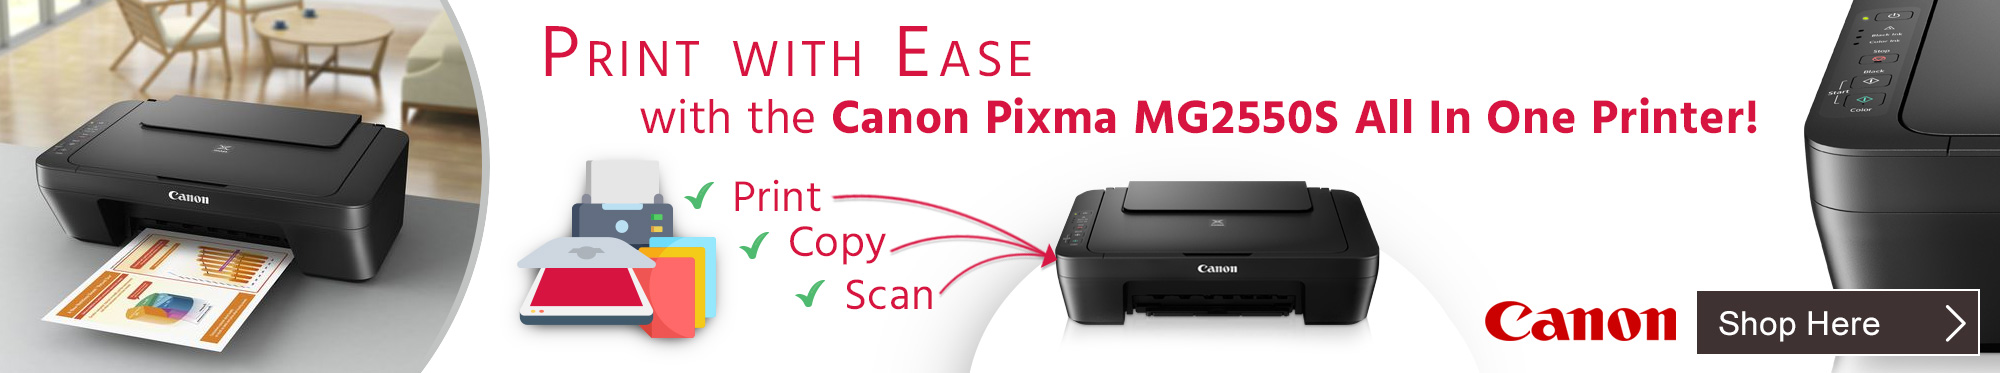 Print With Ease With The Canon Pixma MG2550S All In One Printer